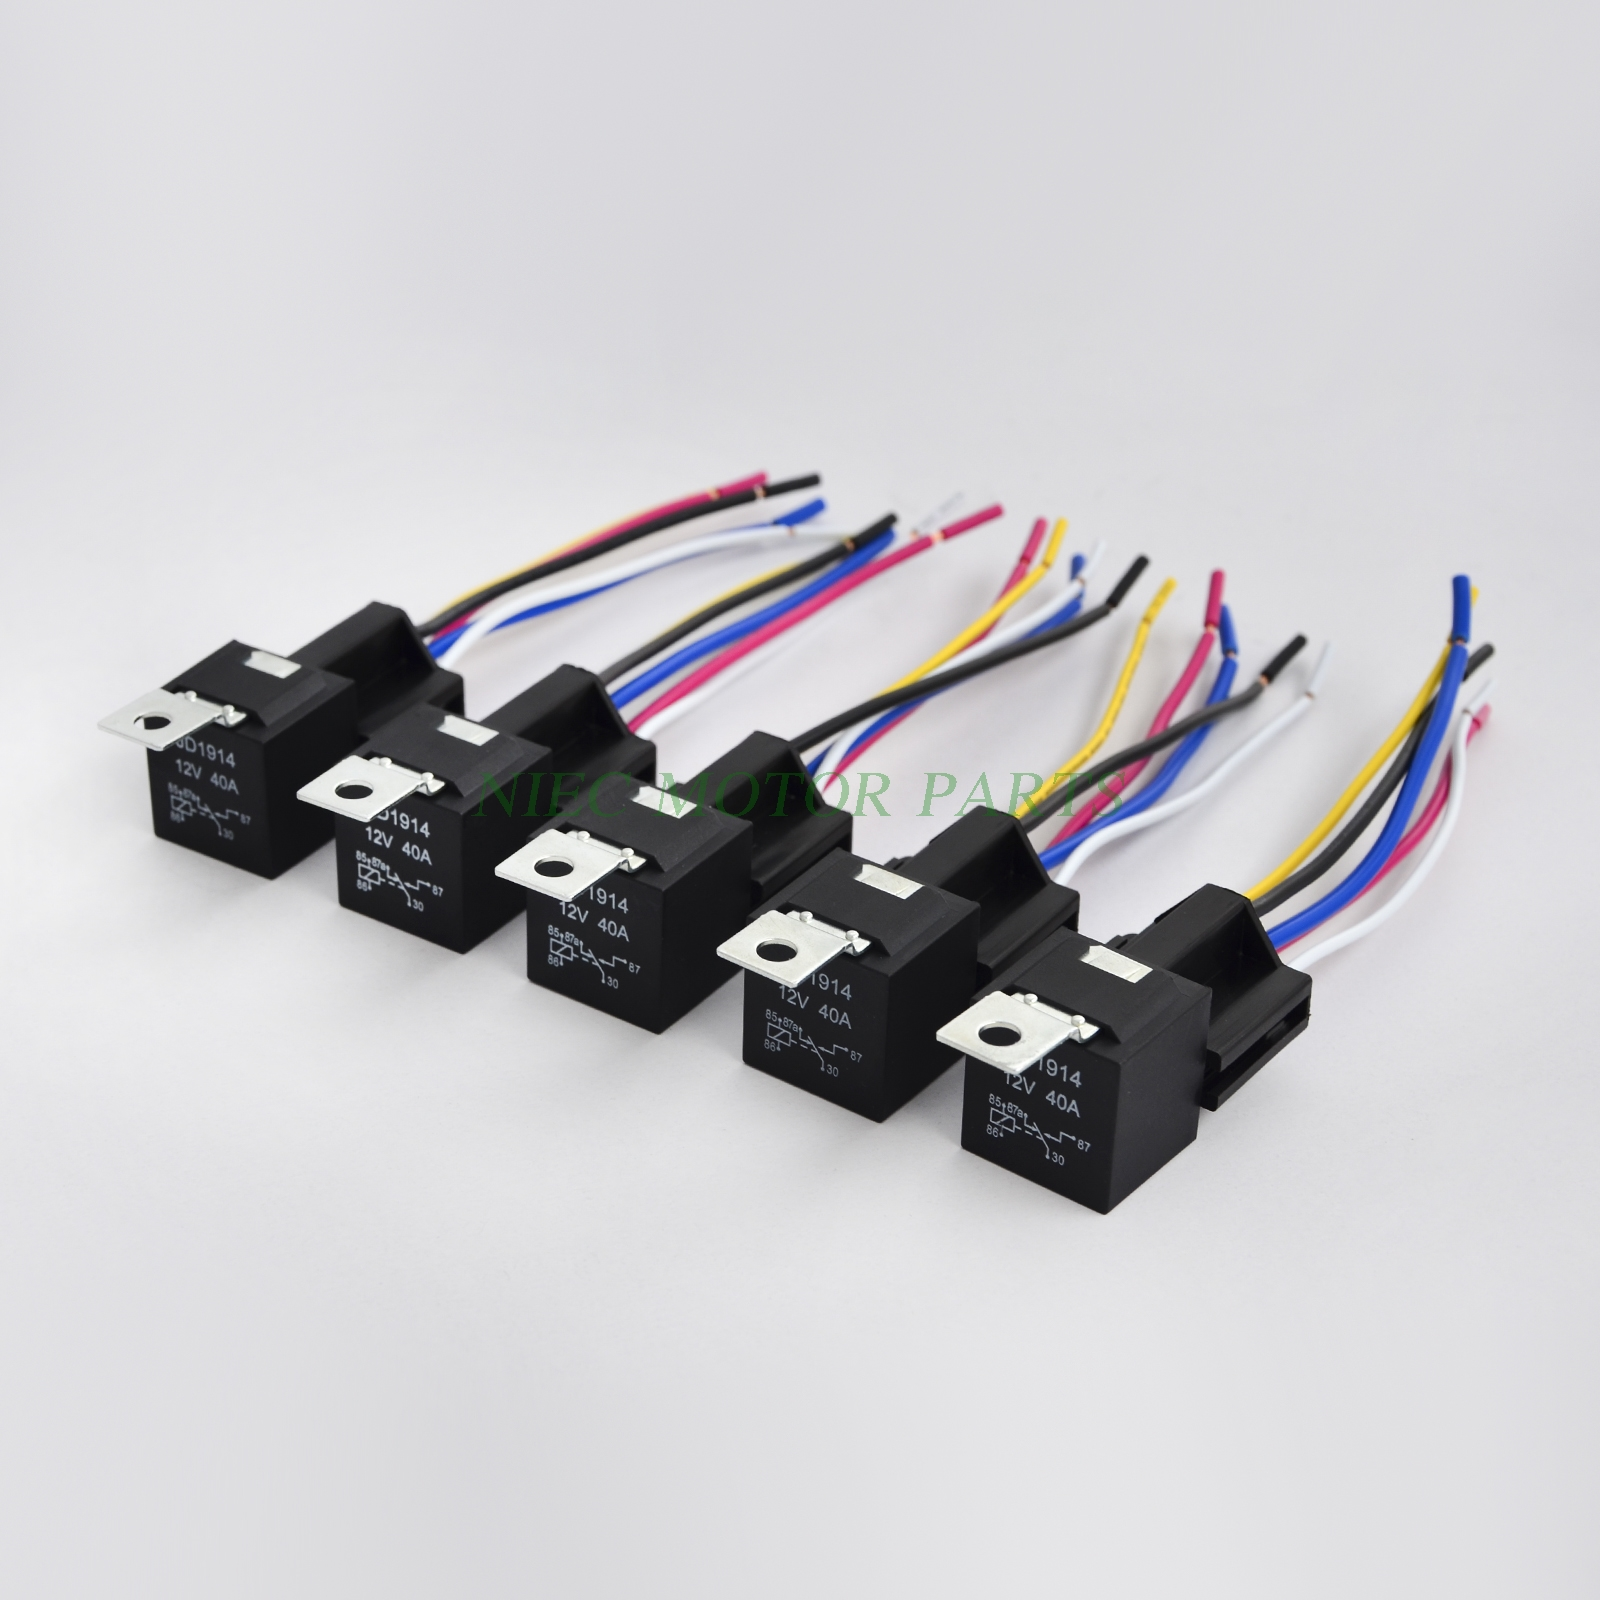 12V 30 40 AMP SPDT Automotive Relay with Wires Harness Socket 5 pack 12v 30 40 amp 5 wire diagram for air conditioner fan motor